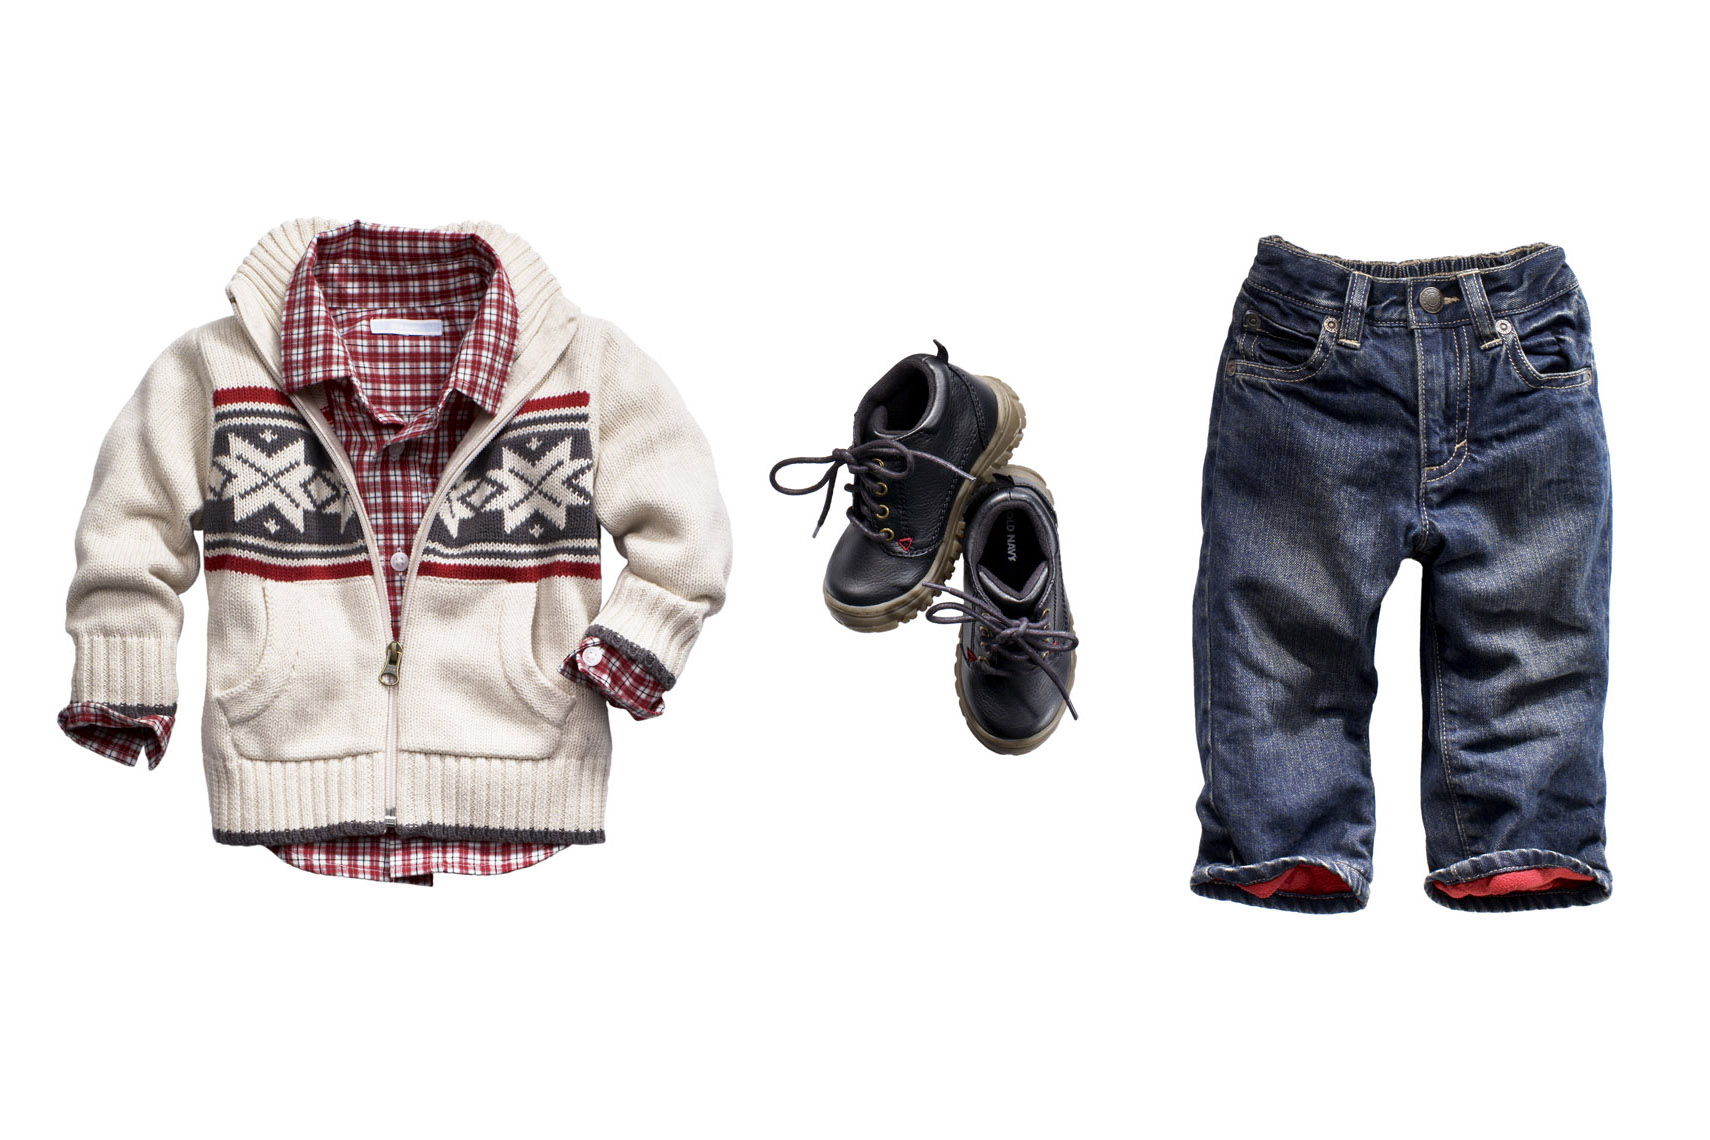 Apparel Still Life, Jeans and Sweater for Toddler